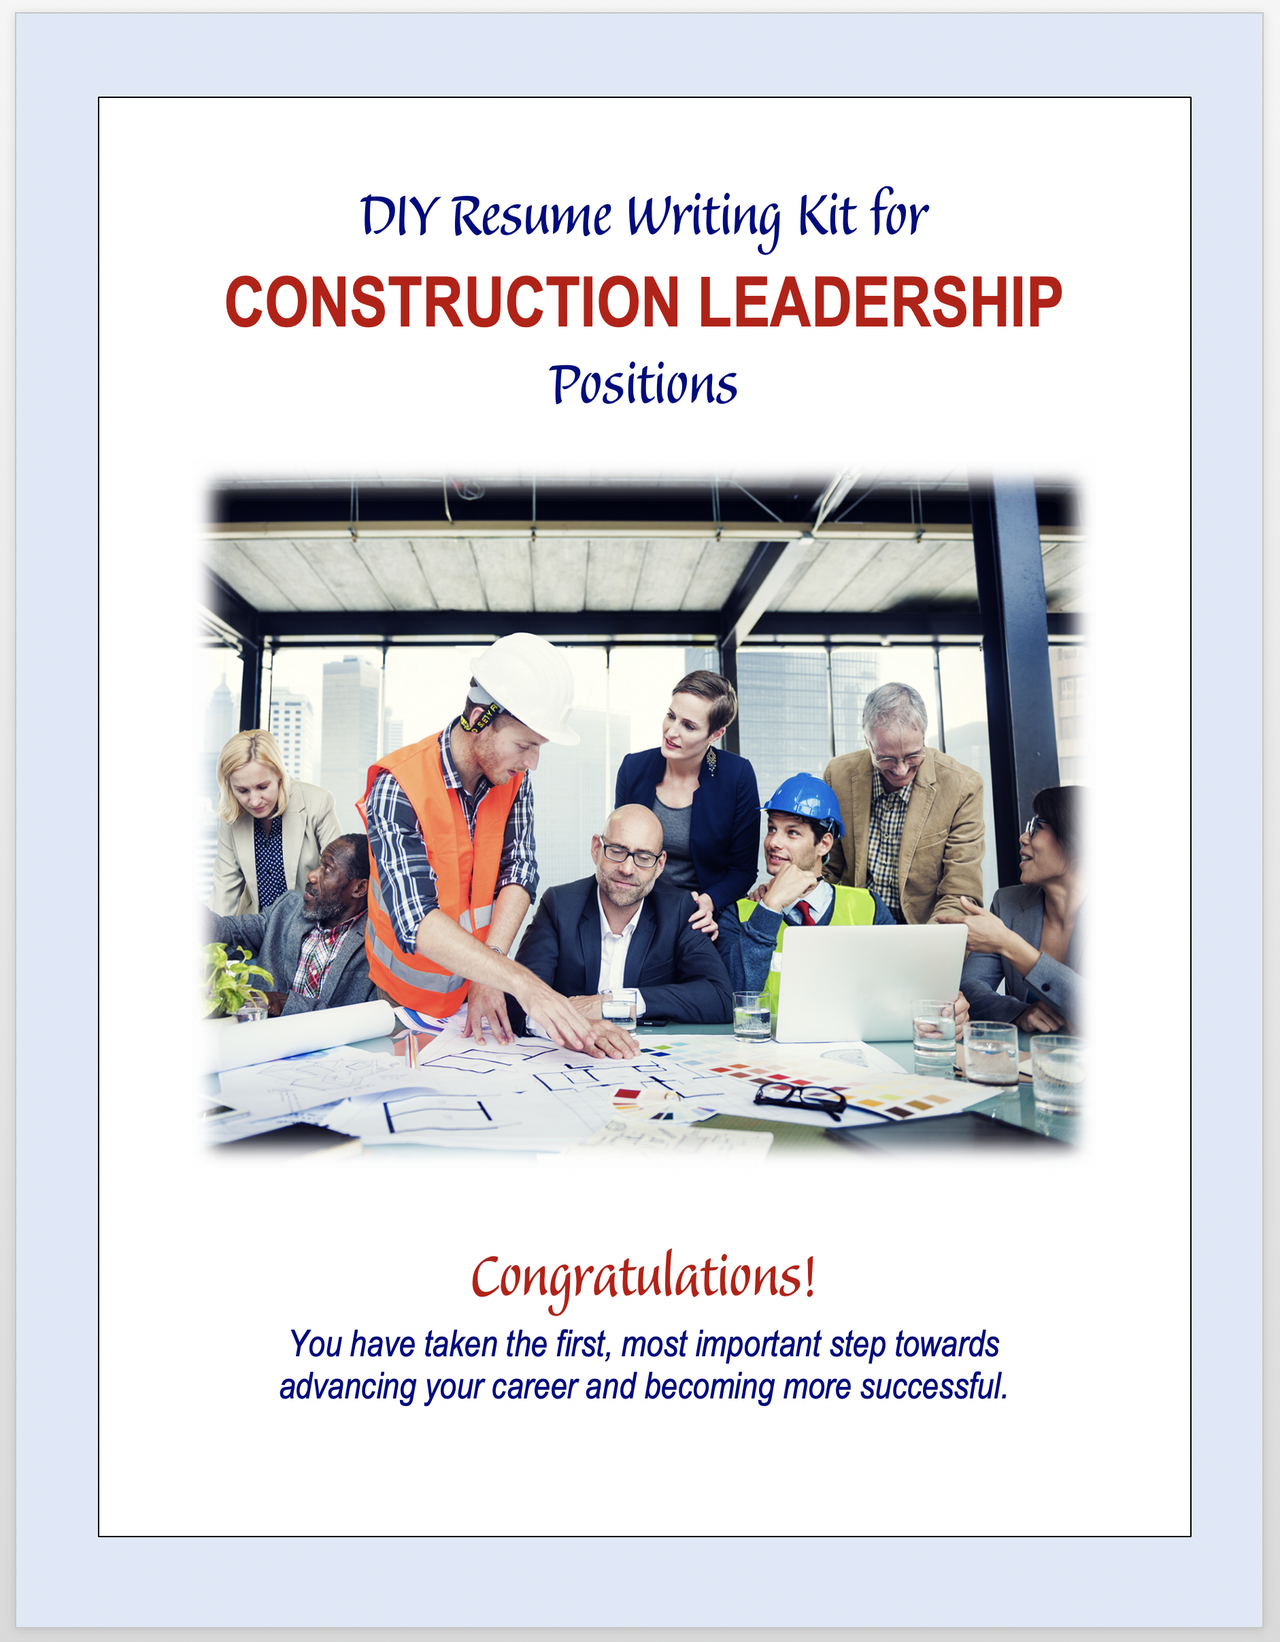 construction leadership.png